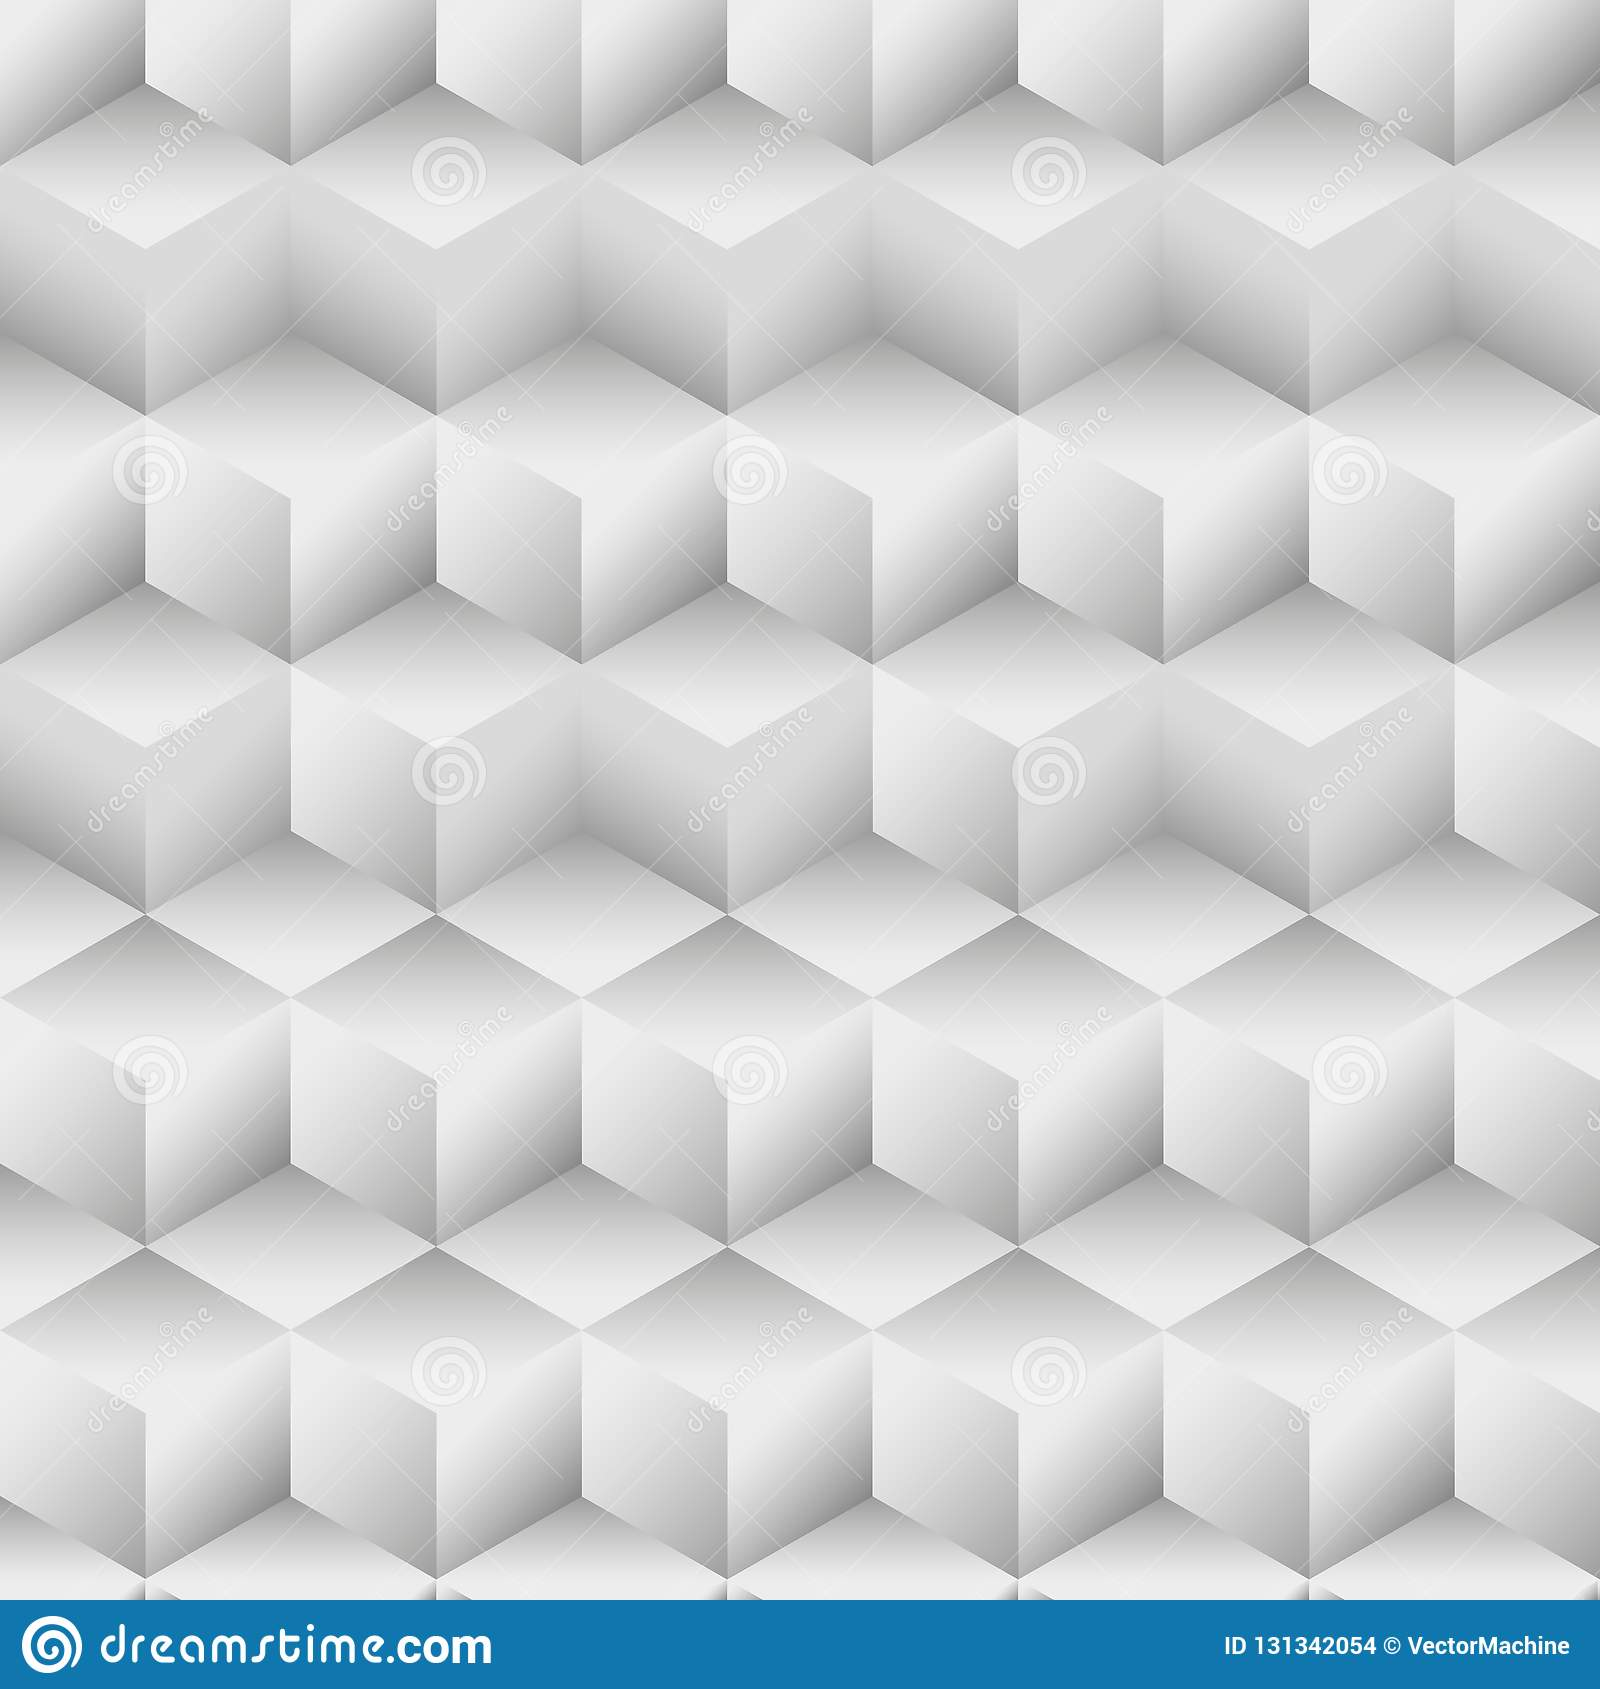 Geometric pattern, seamless white texture.